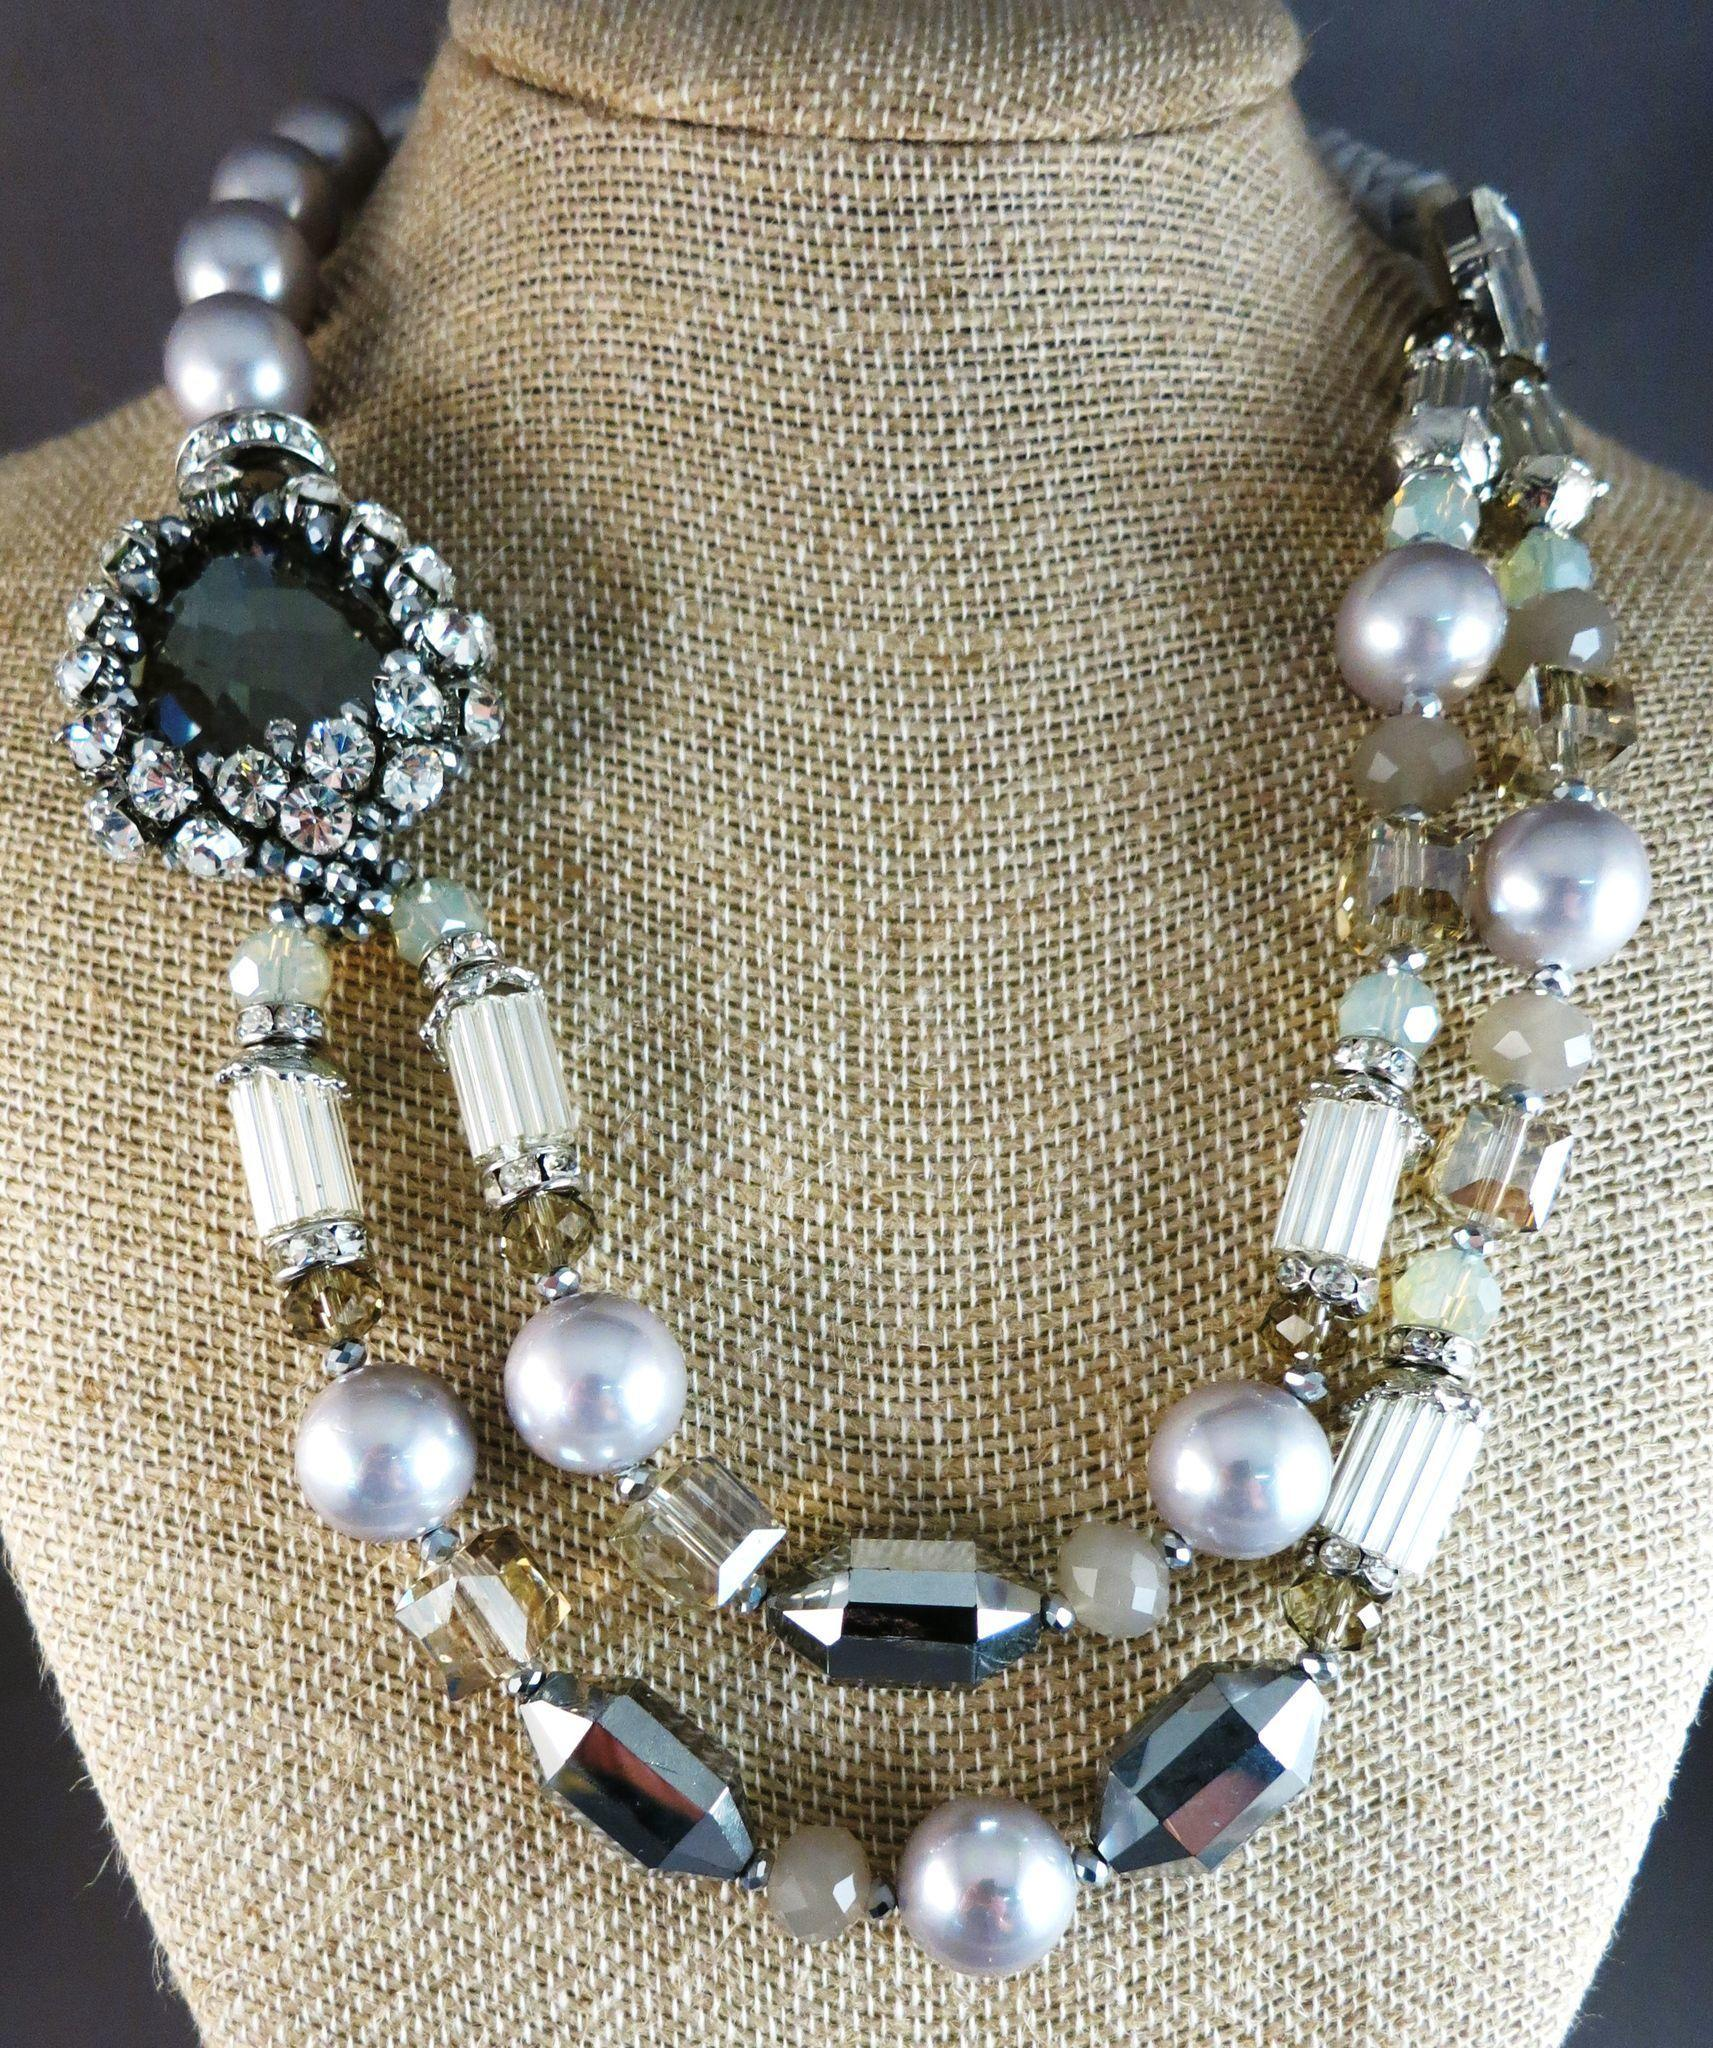 OVER-THE-TOP Runway Necklace Stunning Circa 1980